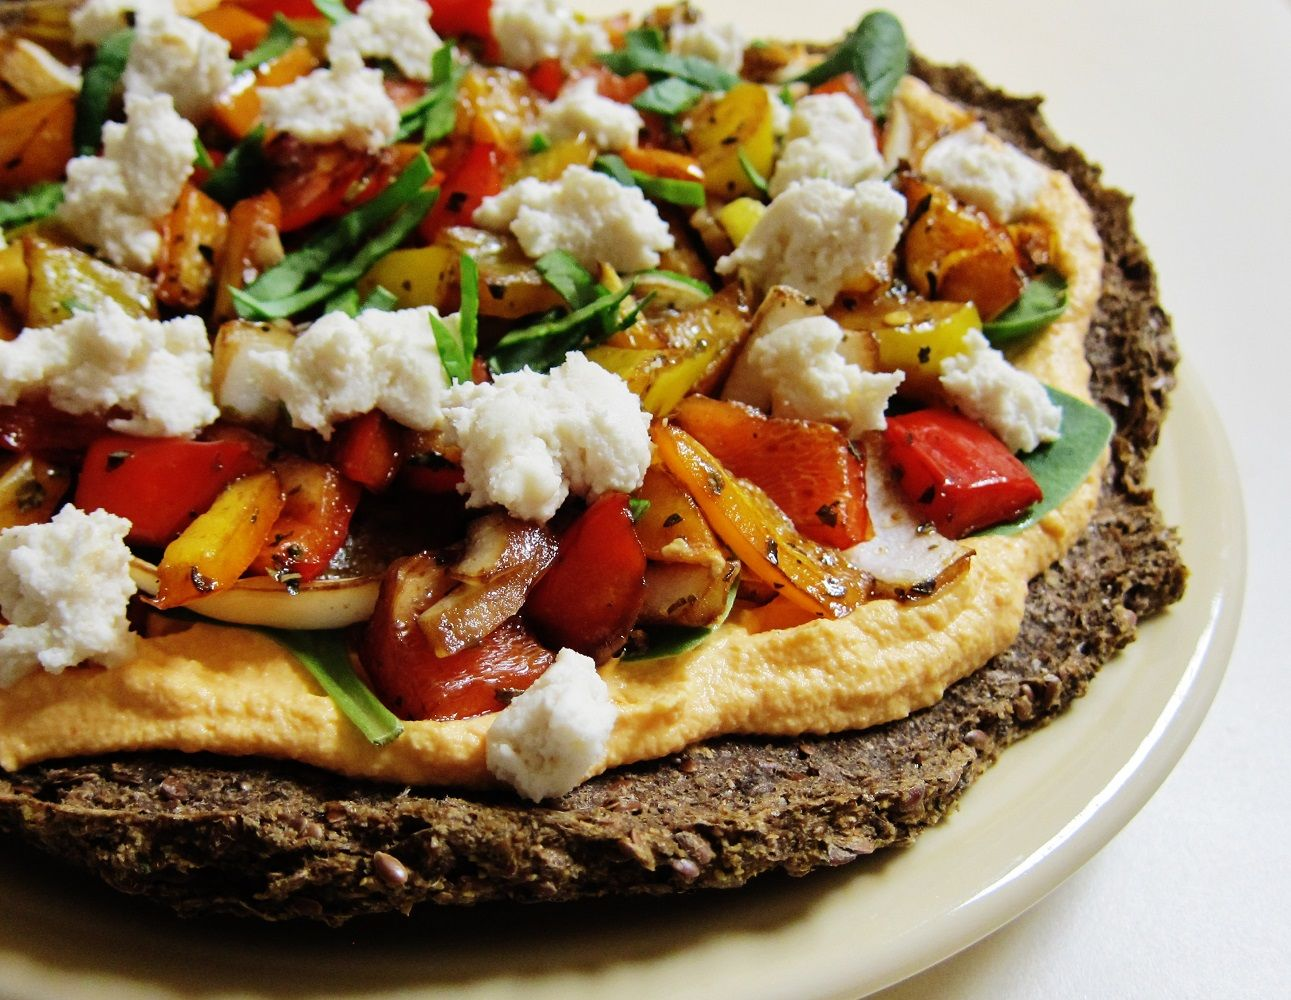 Raw on 10 a day or less raw roasted pepper pizza recipe and easy affordable raw food recipes raw meal plans menus vegan recipes and lifestyle tips forumfinder Image collections